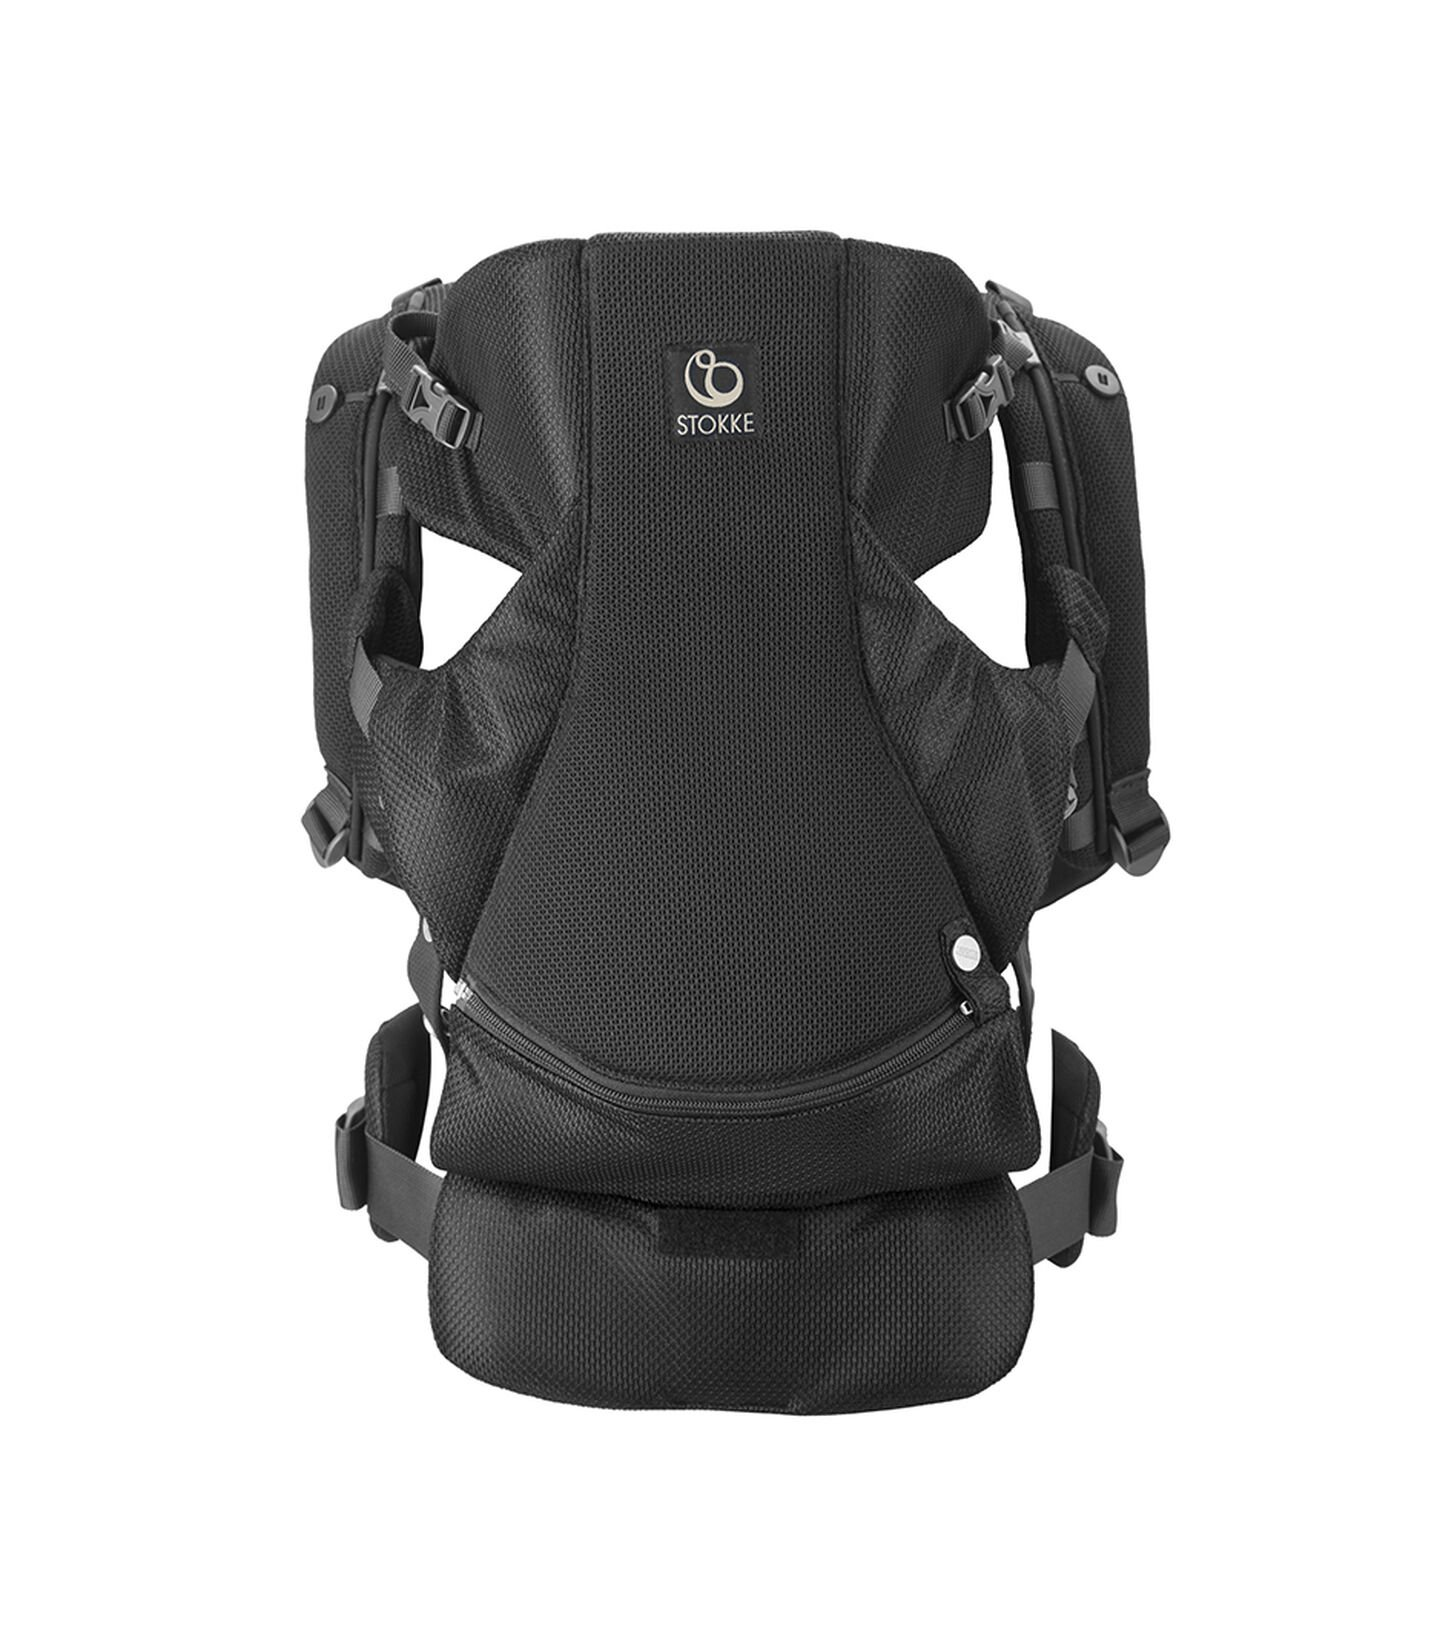 Stokke® MyCarrier™ Bauch- & Rückentrage Black Mesh, Black Mesh, mainview view 2